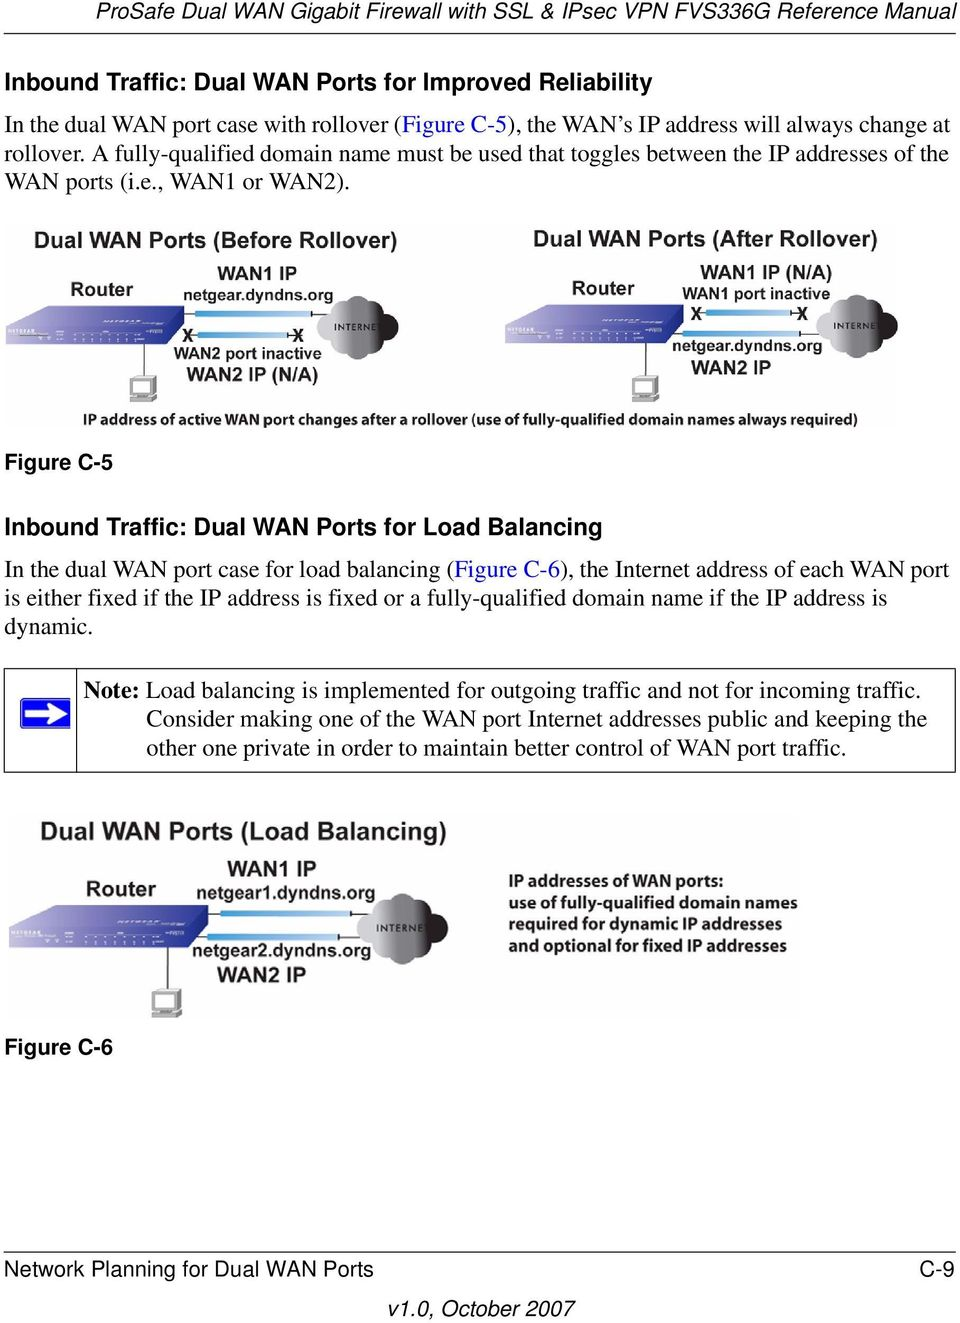 Figure C-5 Inbound Traffic: Dual WAN Ports for Load Balancing In the dual WAN port case for load balancing (Figure C-6), the Internet address of each WAN port is either fixed if the IP address is